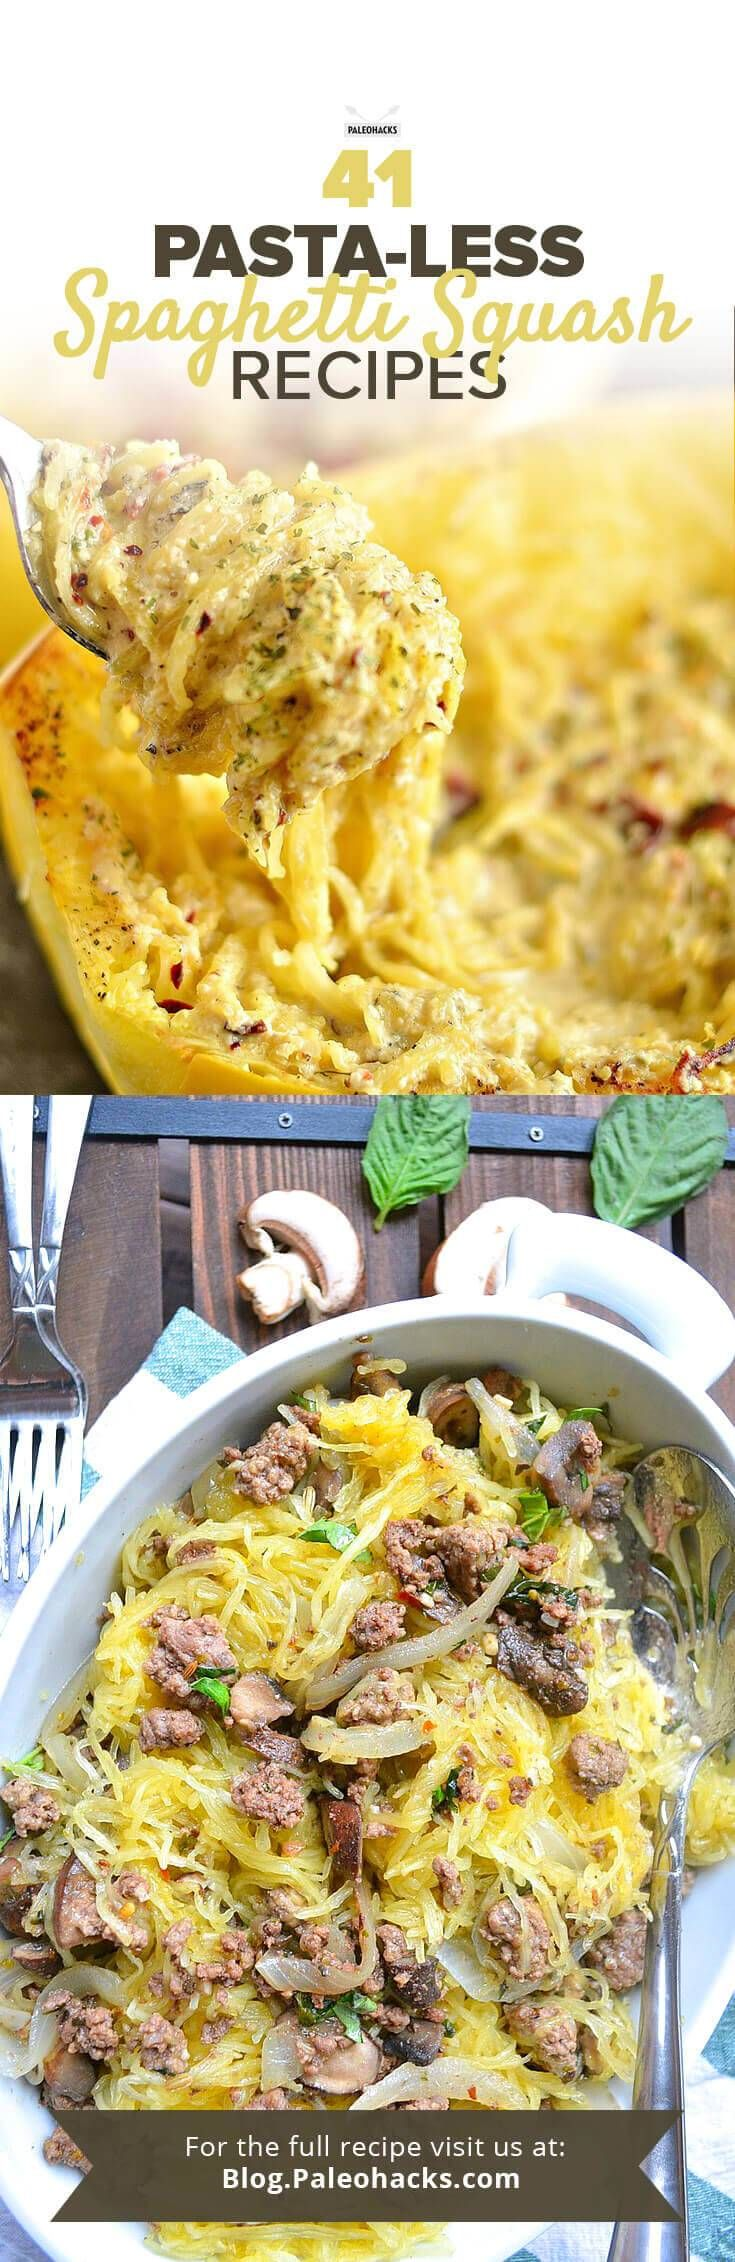 Dear pasta lovers, fret not: there's plenty of Paleo substitutes for pasta – one of the tastiest being spaghetti squash. Easily roasted and then scraped with a fork, spaghetti squash is rich in flavor and nutrition and, yep, tastes pretty close to its namesake pasta cousin. Get the recipe here: http://paleo.co/spagsquashrcps